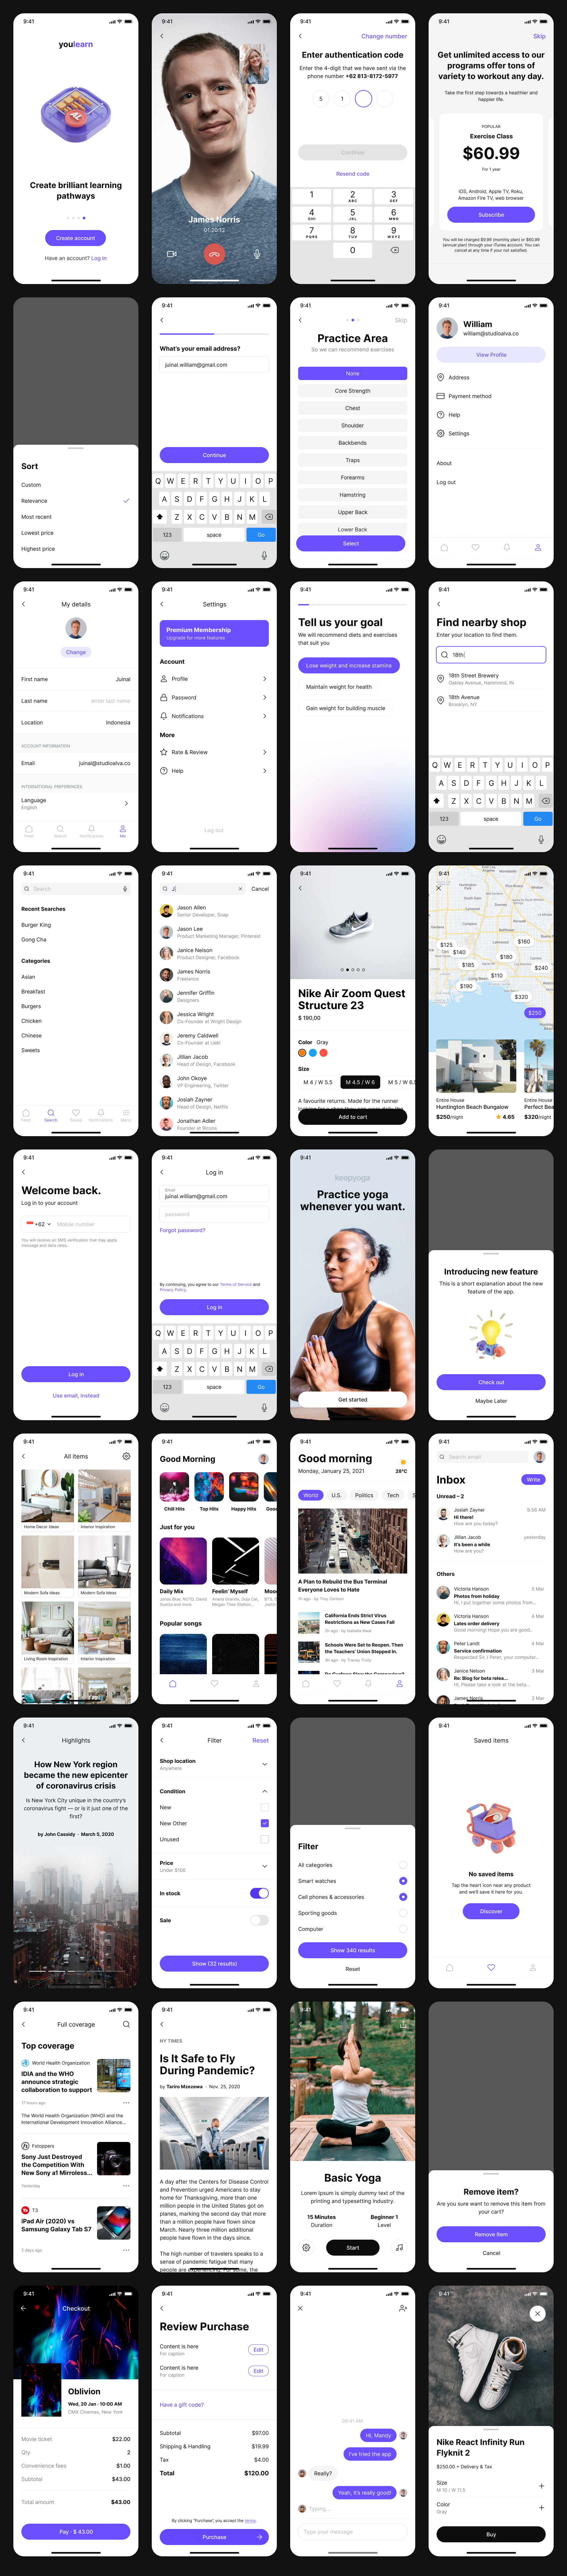 Nucleus Free UI Kit for Figma - Create mockup or prototype in Figma at speed. Nucleus is a free UI component library that provides you the building blocks you need to design your next mobile app.